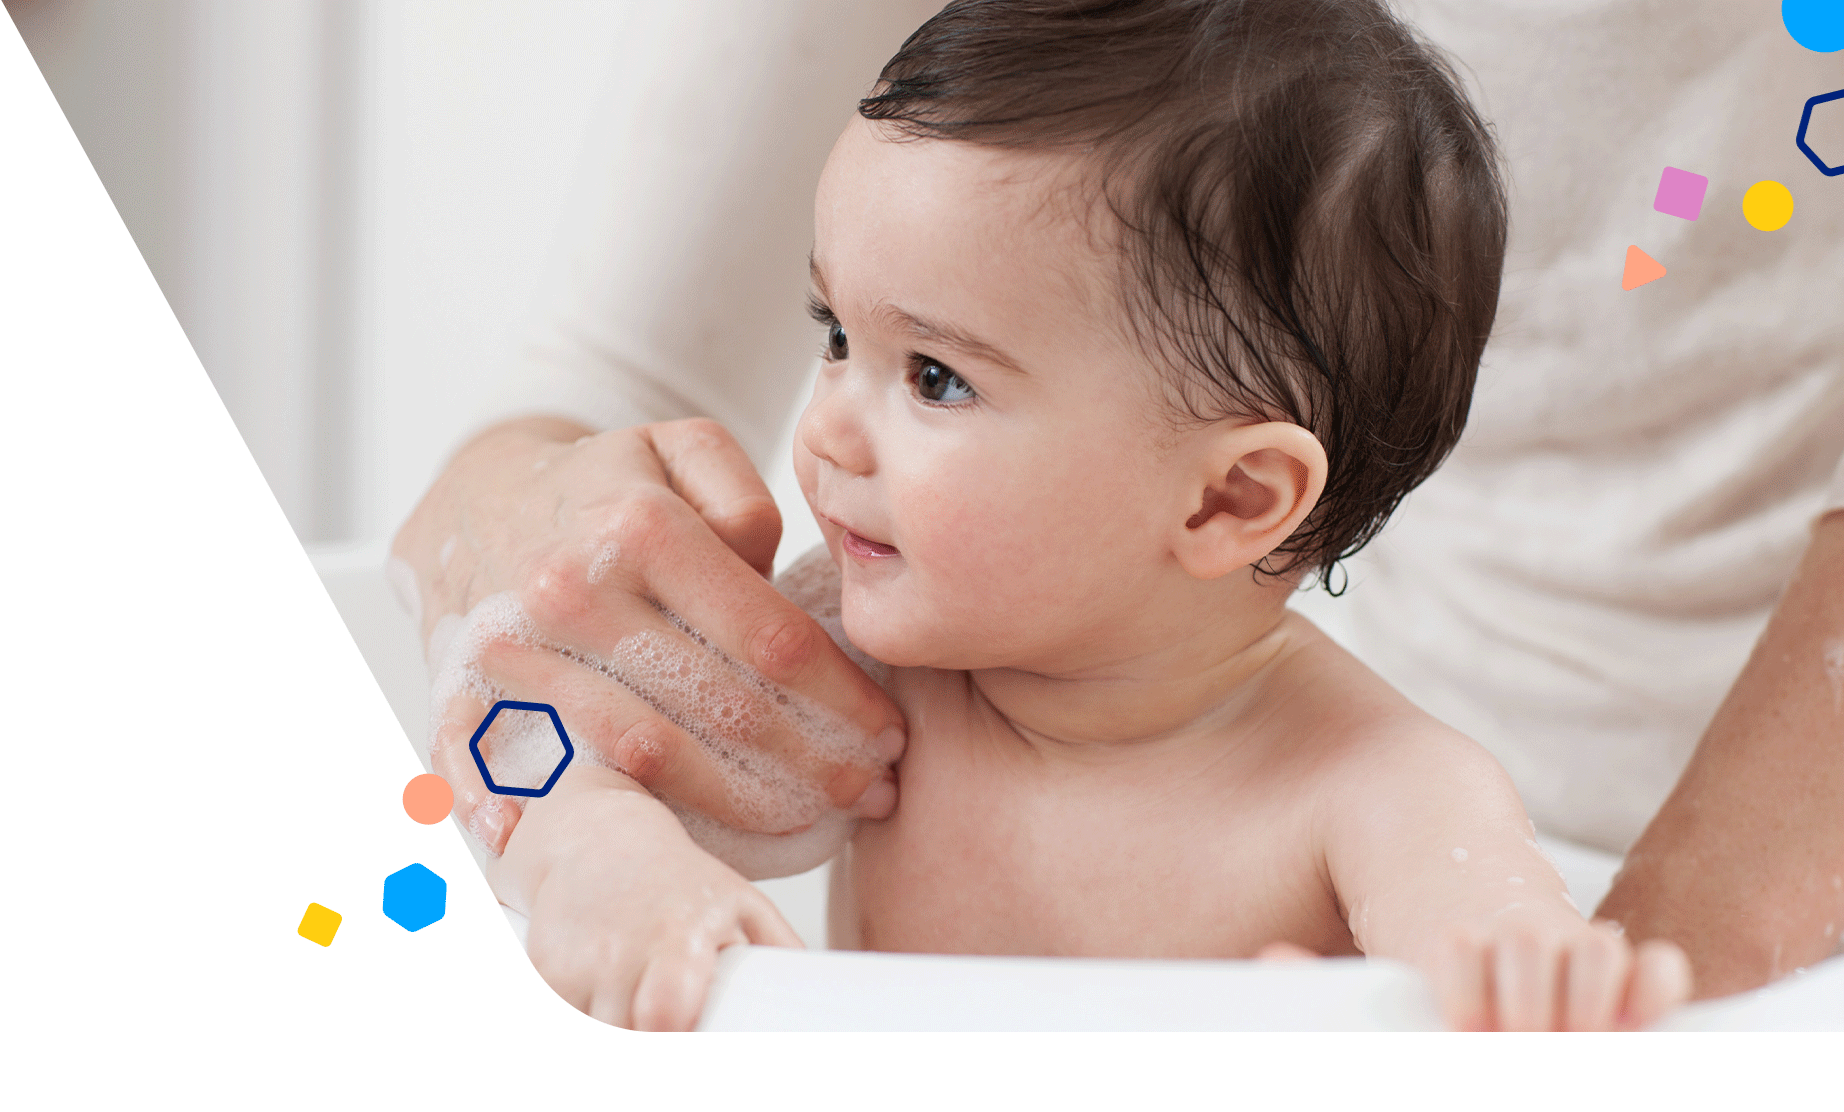 Give Your Baby a Boost 6 Months